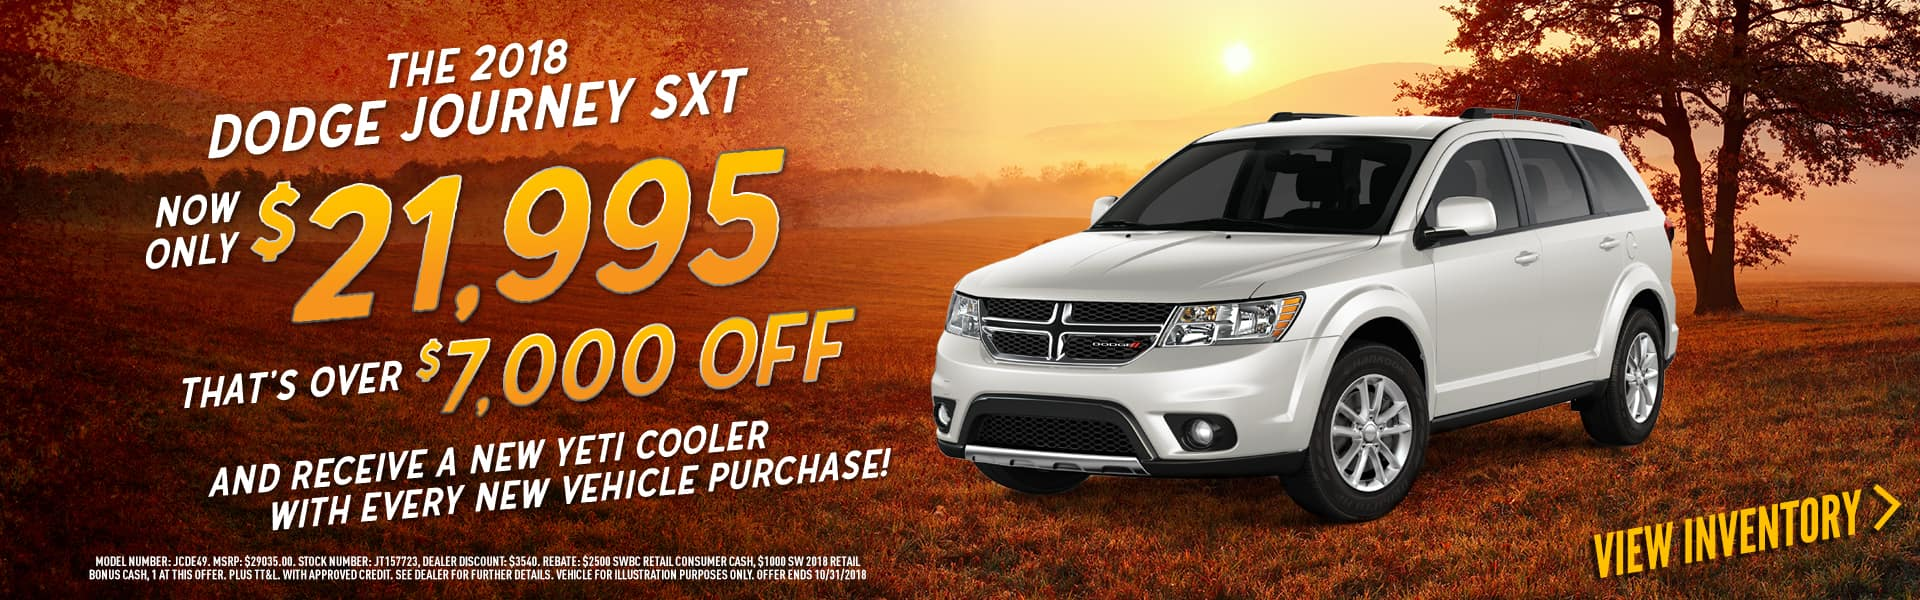 2018-dodge-journey-deals-near-me-beaumont-tx